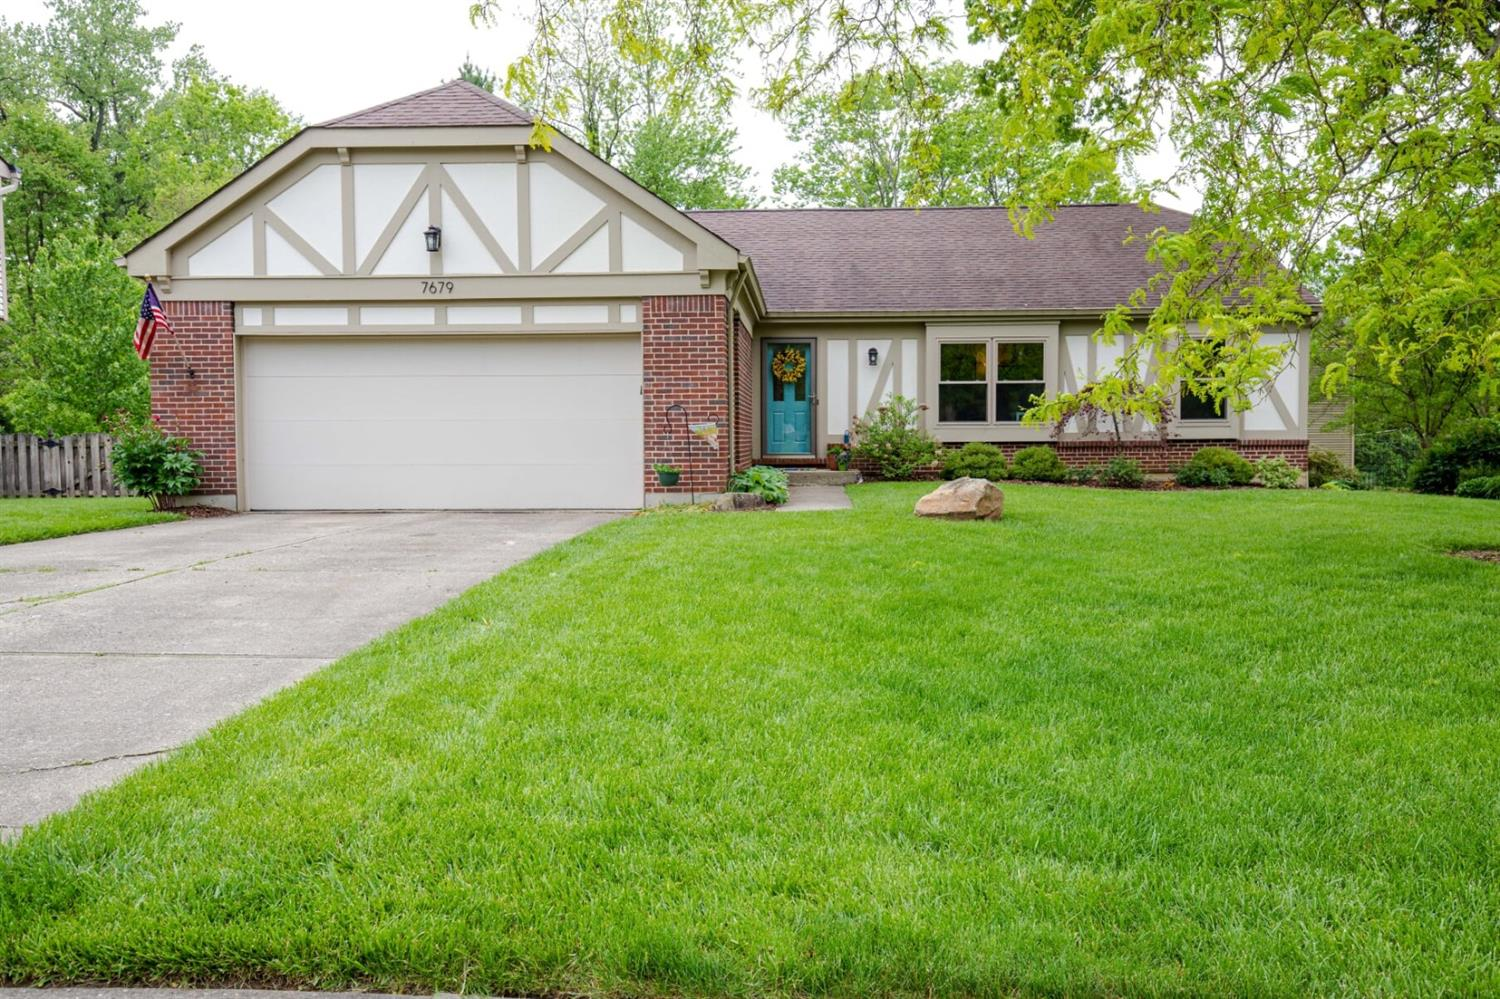 7679 Anderson Oaks Dr Anderson Twp OH